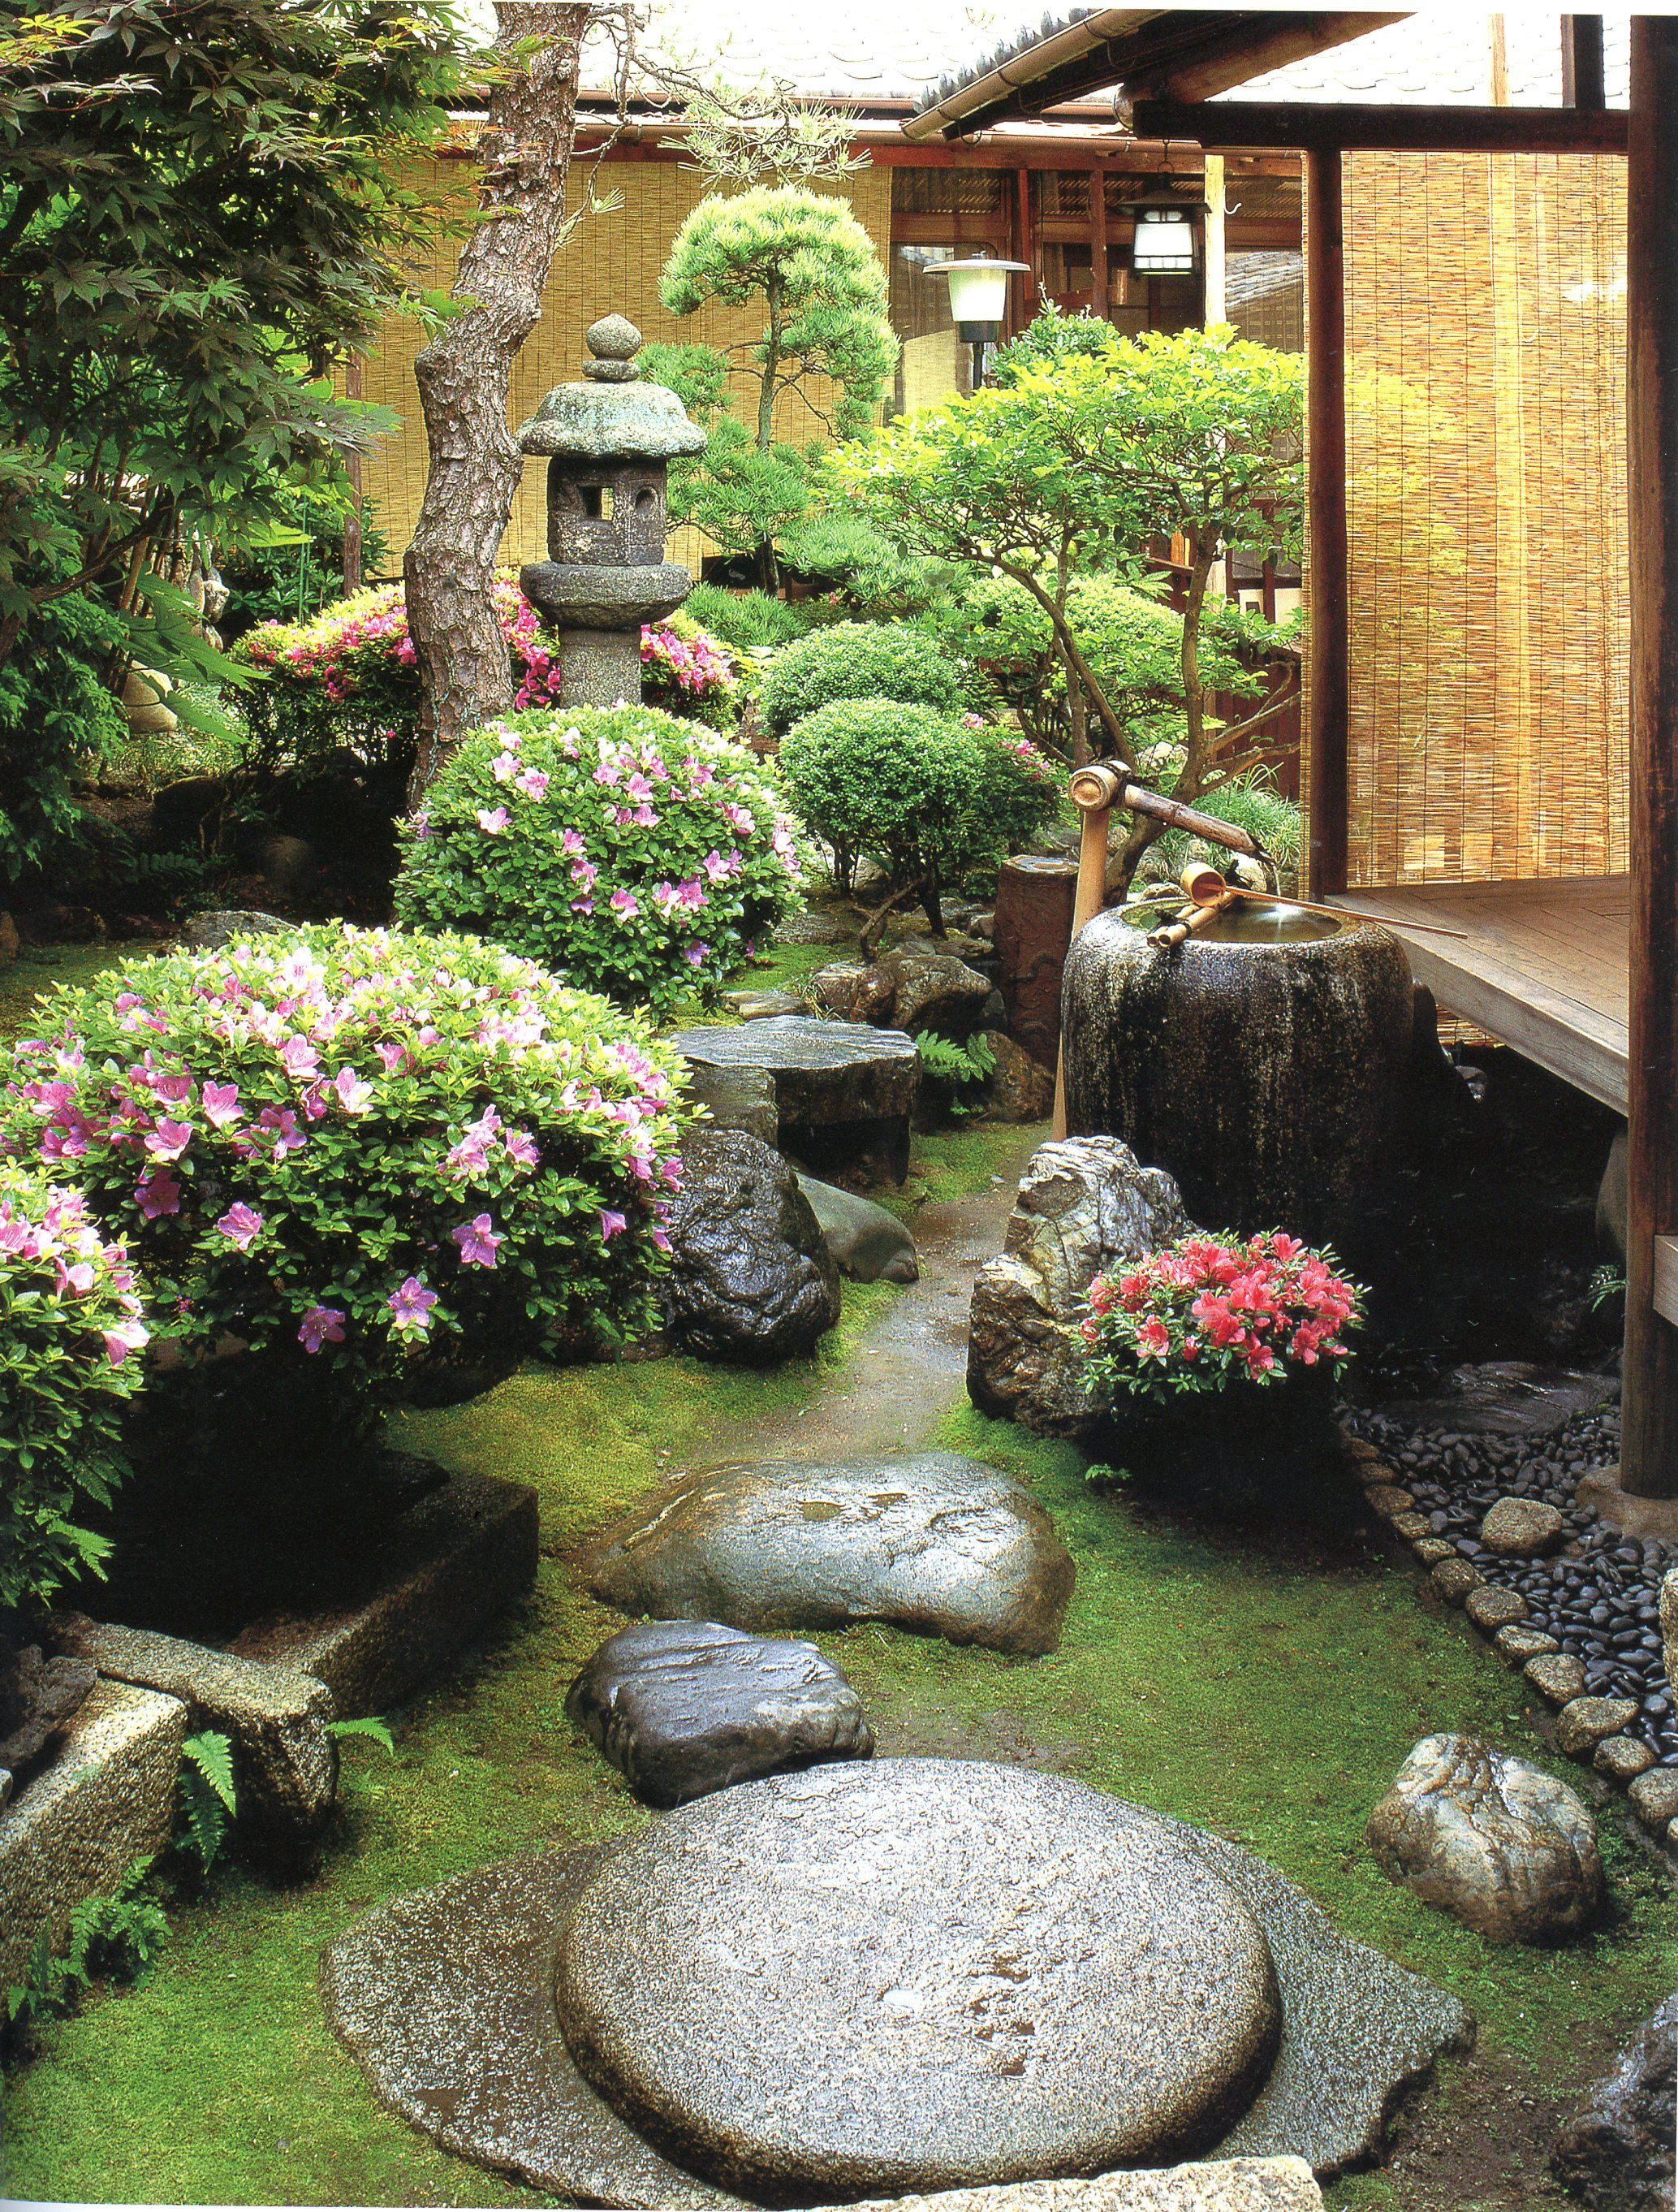 Courtyard Garden Ideas Yoshida Residence Landscapes For Small Spaces Japanese